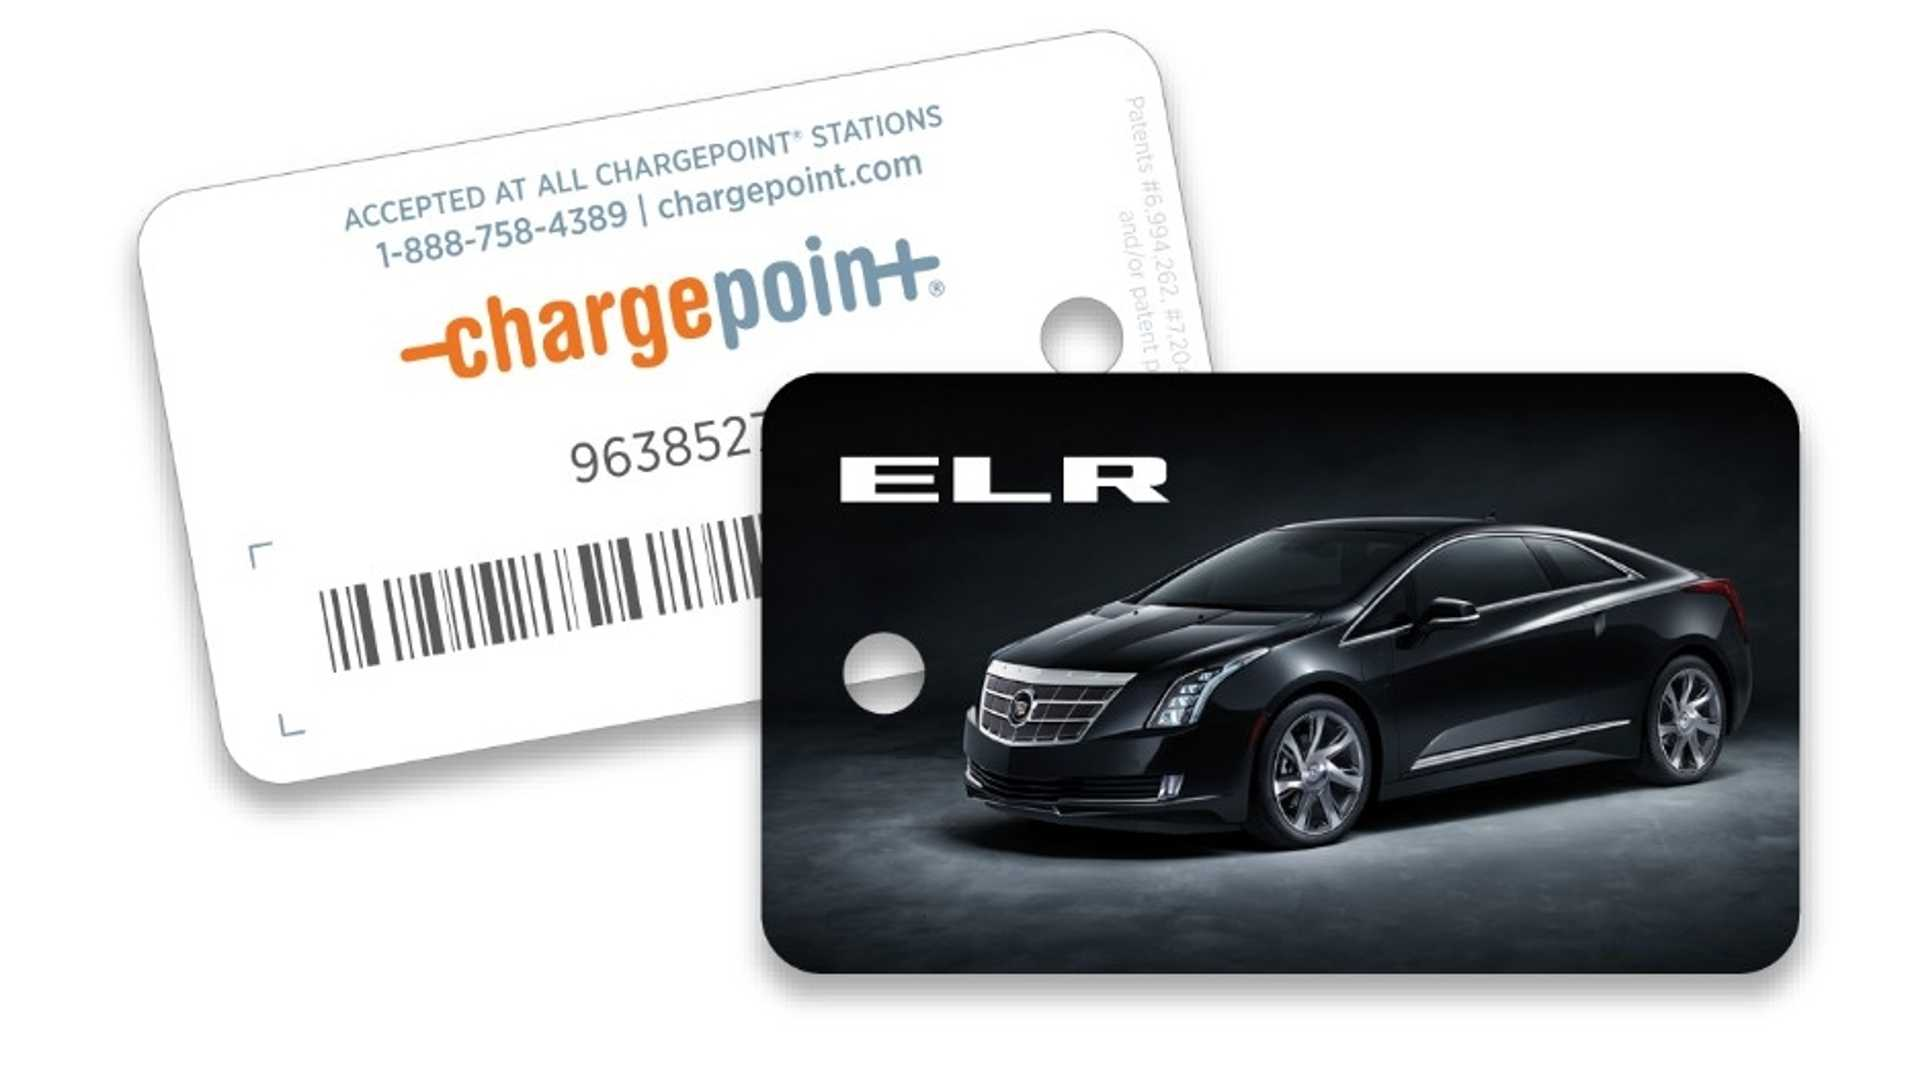 A Cadillac Elr Get Free Chargepoint Card Charging Fees Still Ly